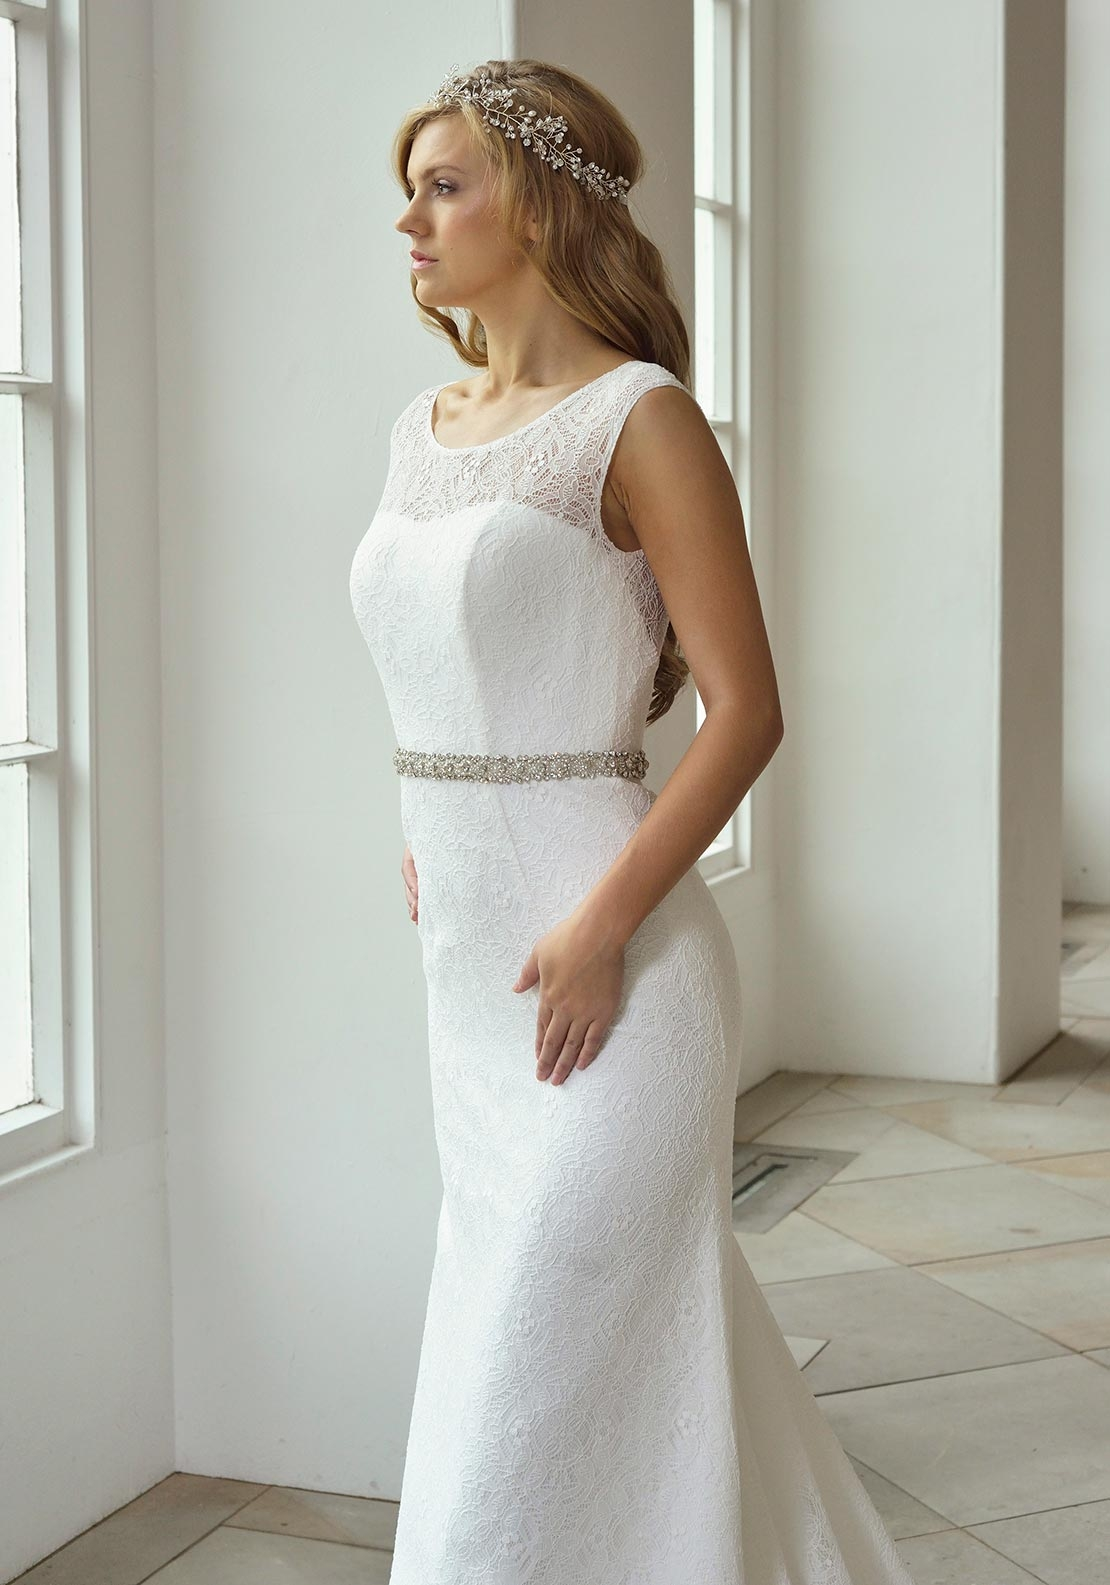 Catherine Parry 2017 Collection 1712 Wedding Dress, Ivory